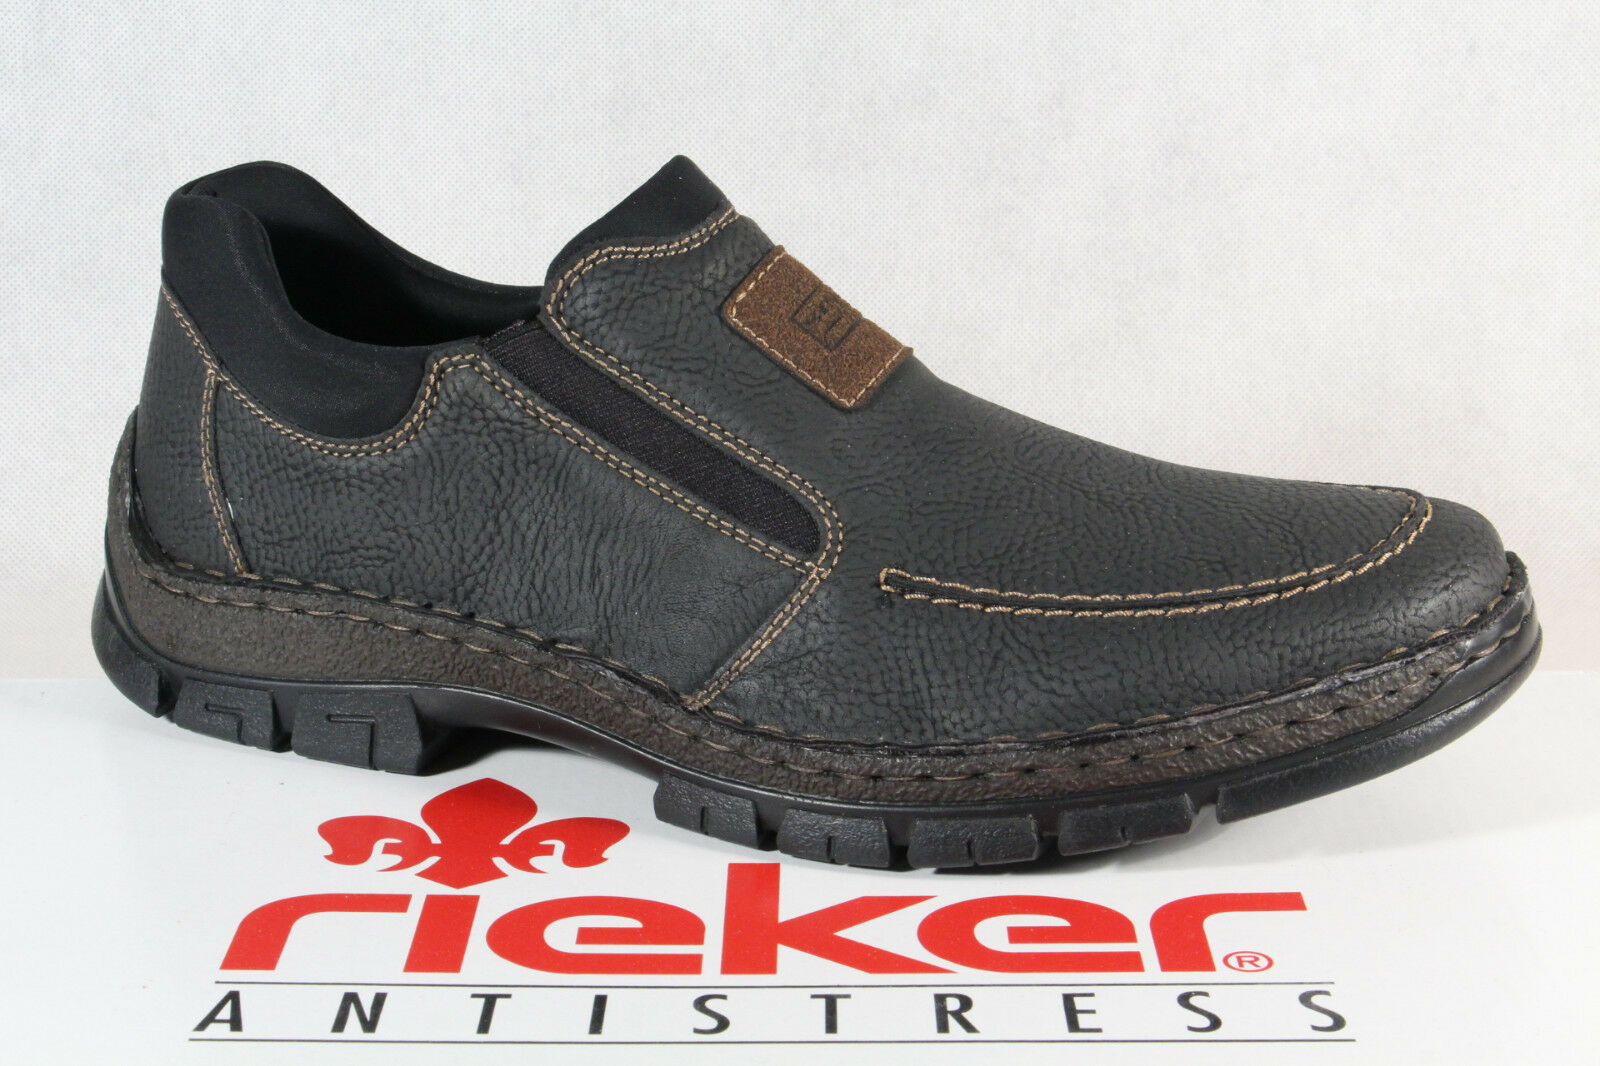 eb065b7723 Slip on shoes up Sneaker Brown 12261 New Rieker Lace nnhavm3982 ...